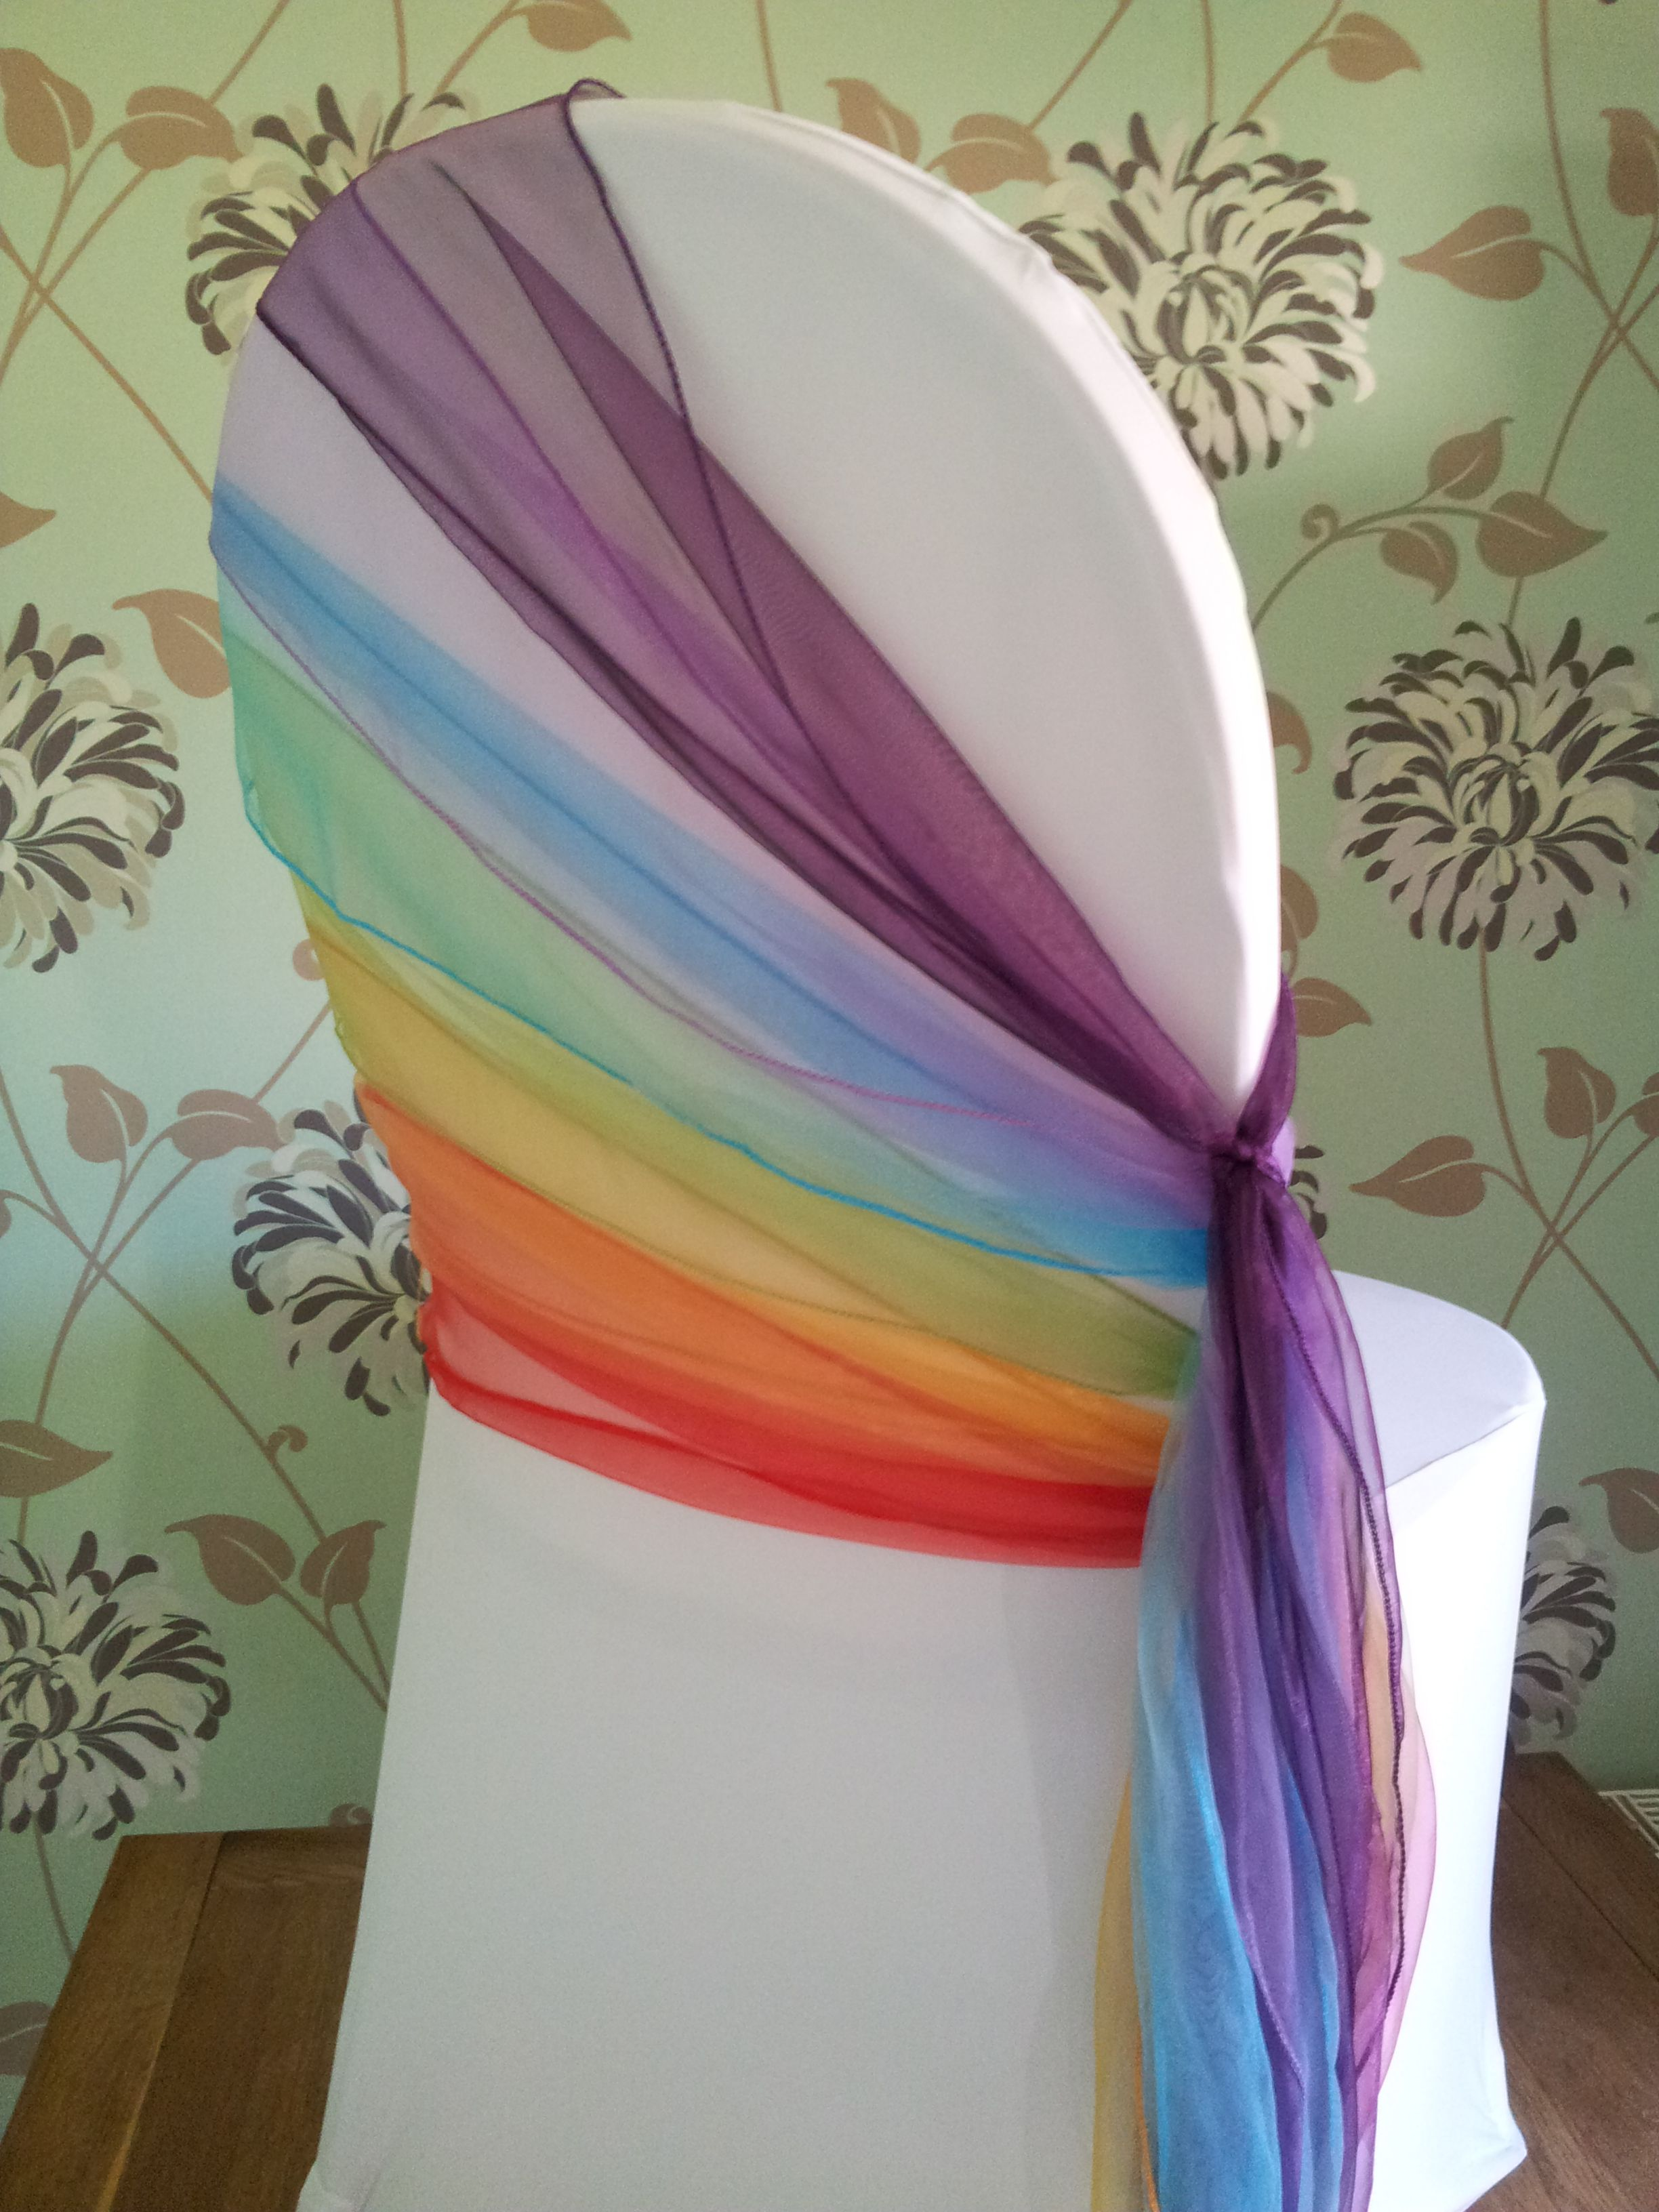 Adding A Rainbow Of Coloured Tulle To Reception Chairs Is Such A